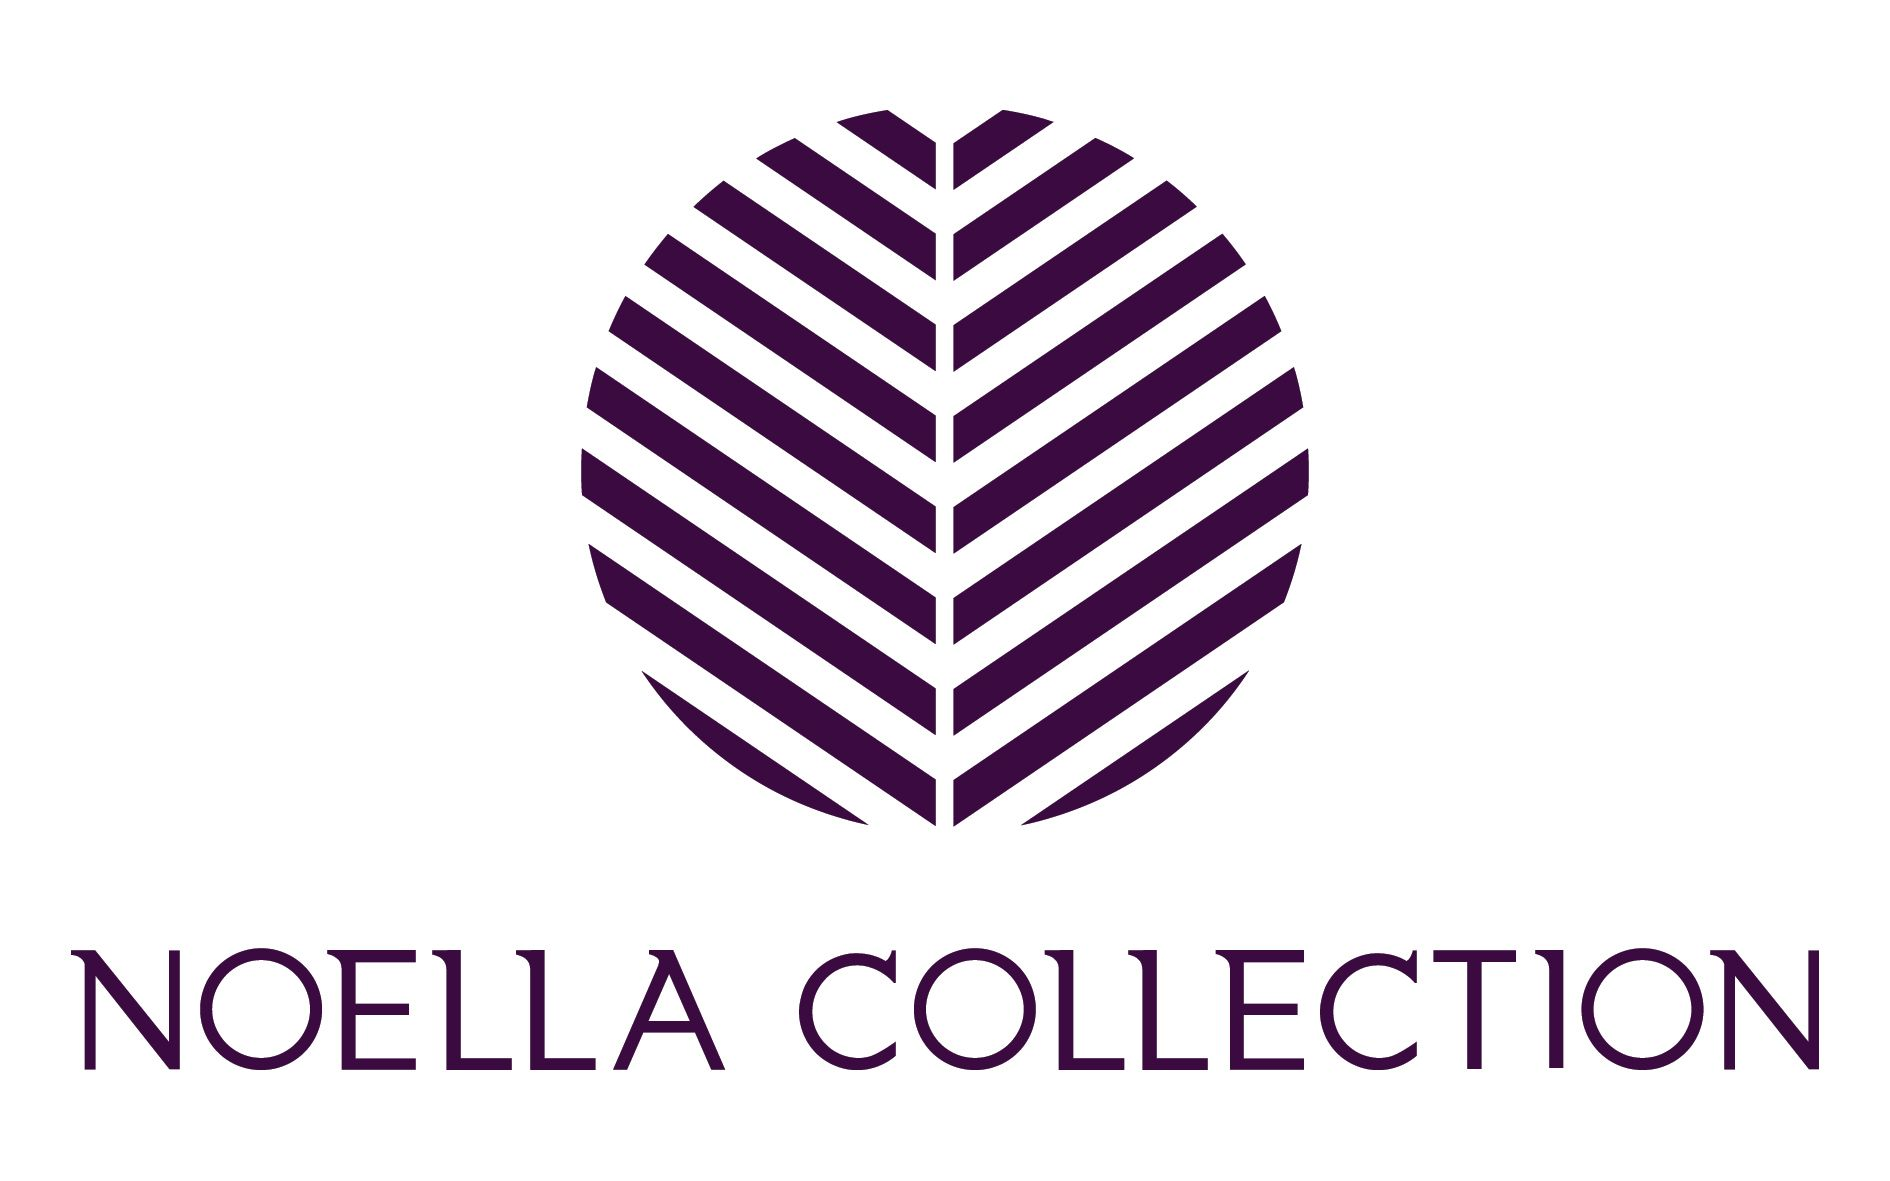 Noella Collection